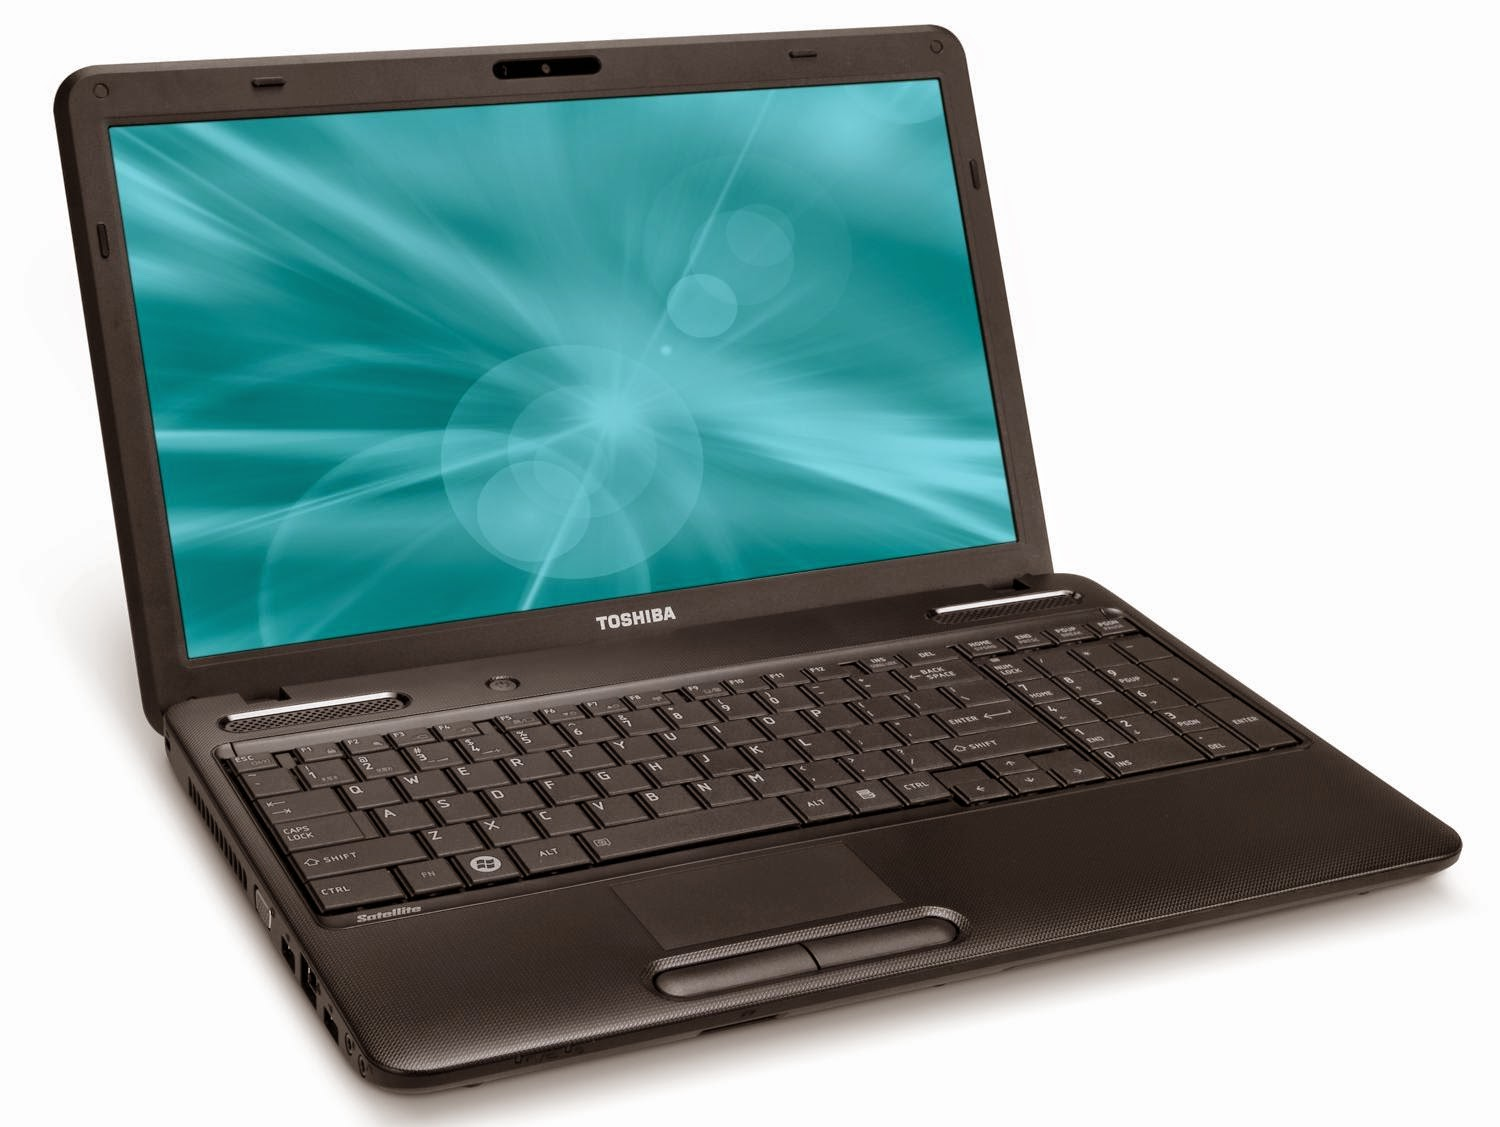 Operation Laptop February 2015 Keyboard Acer Aspire 4738 4738g 4738z 4738zg Toshiba Satellite C655d S5202 Is A With 10ghz Amd Dual Core C 50 Processor 2gb Ddr3 Sdram System Memory Up To 8gb And 250gb Sata Hard Drive